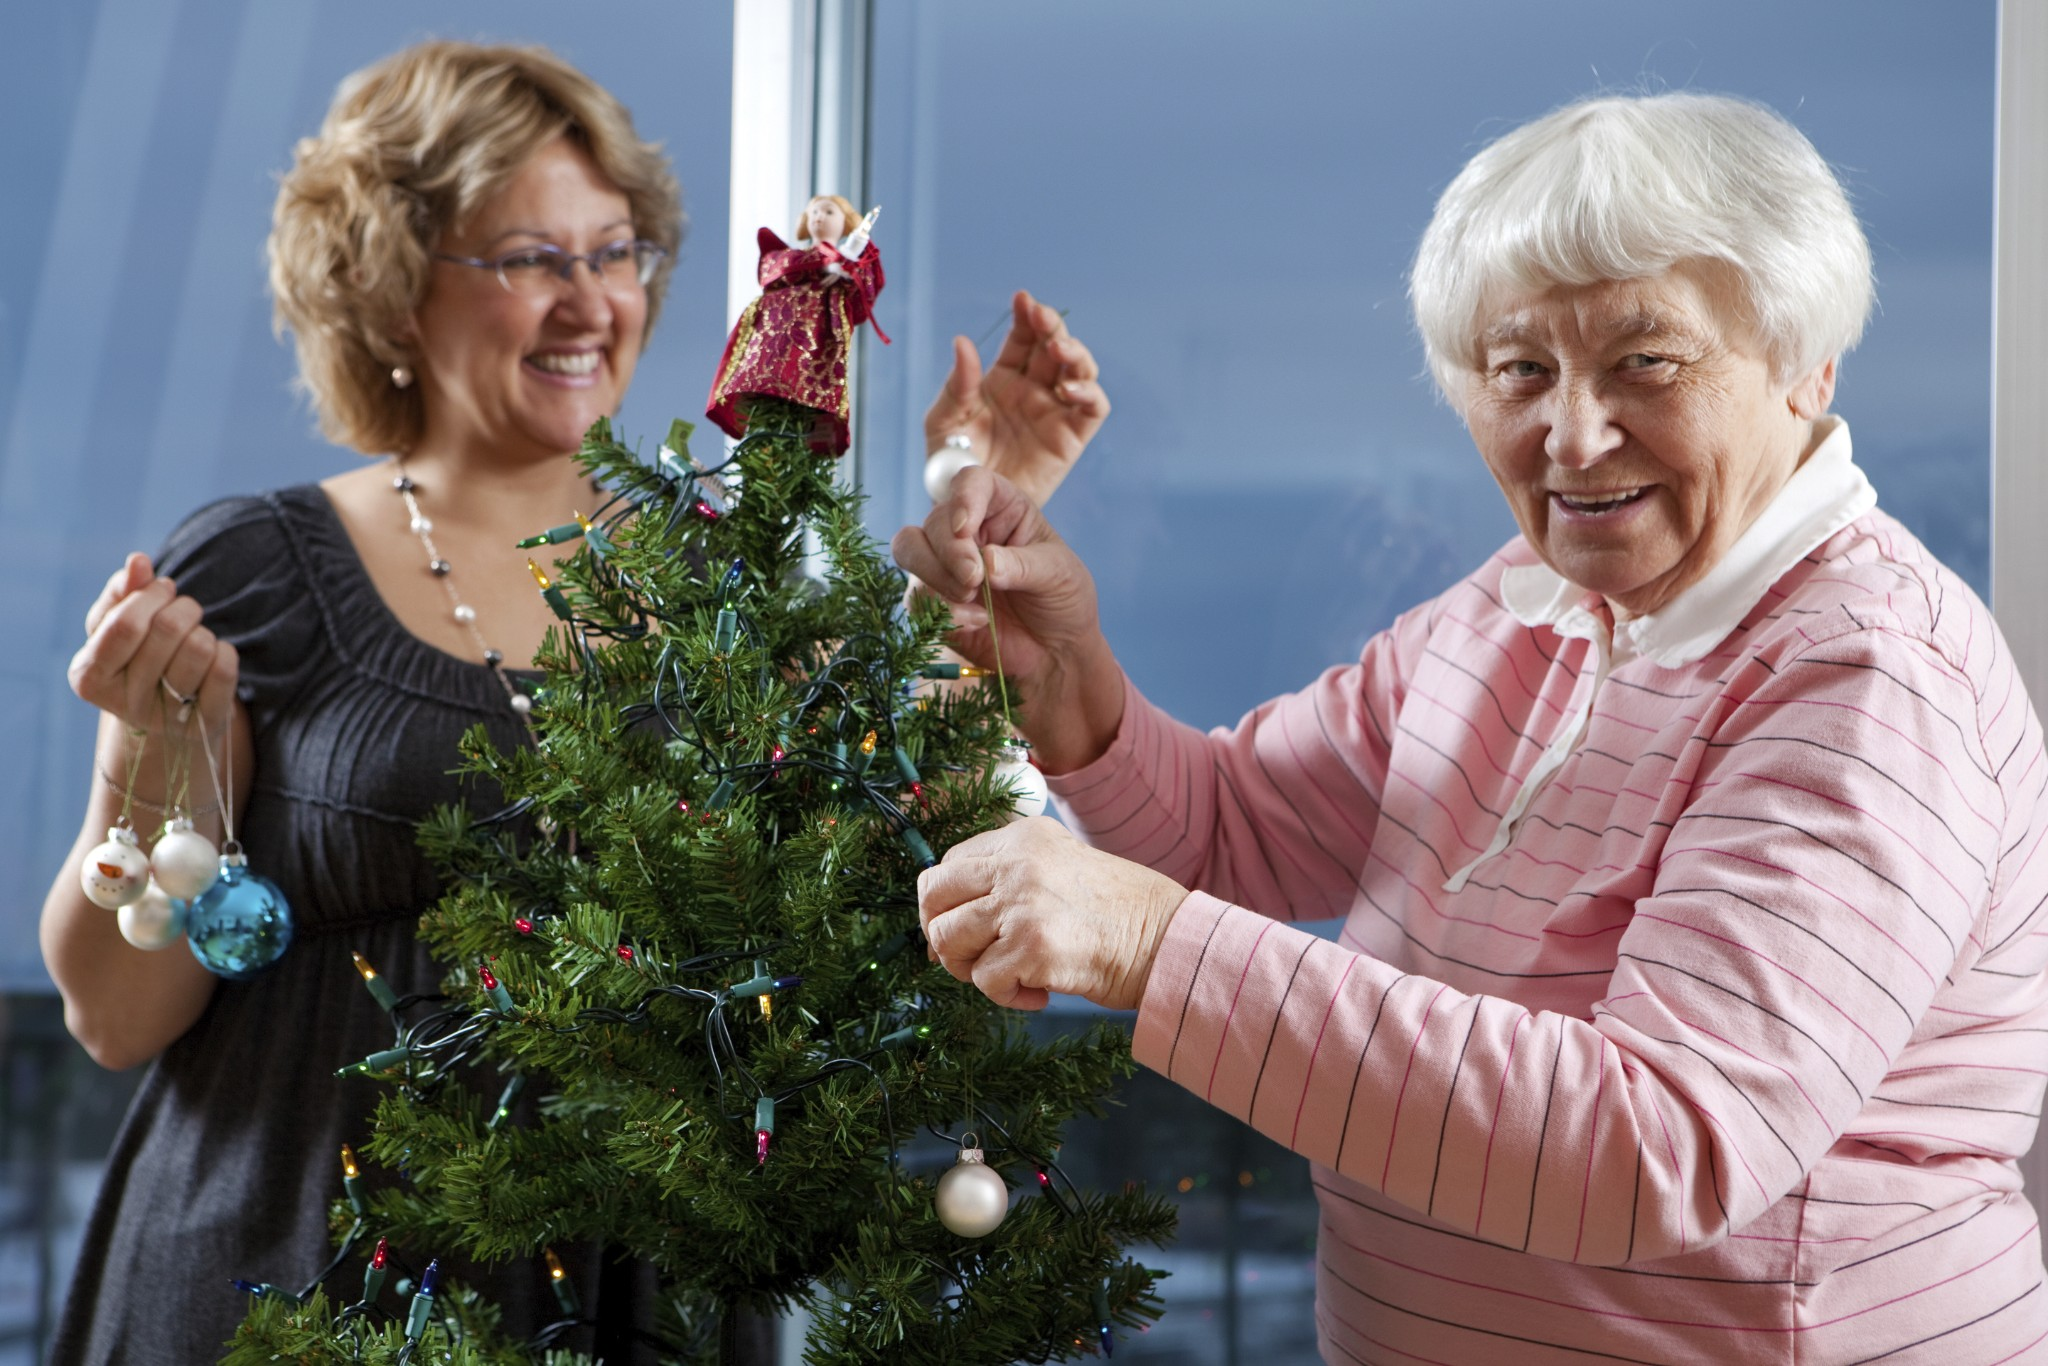 How to Include People With Alzheimer's in Christmas Conversations